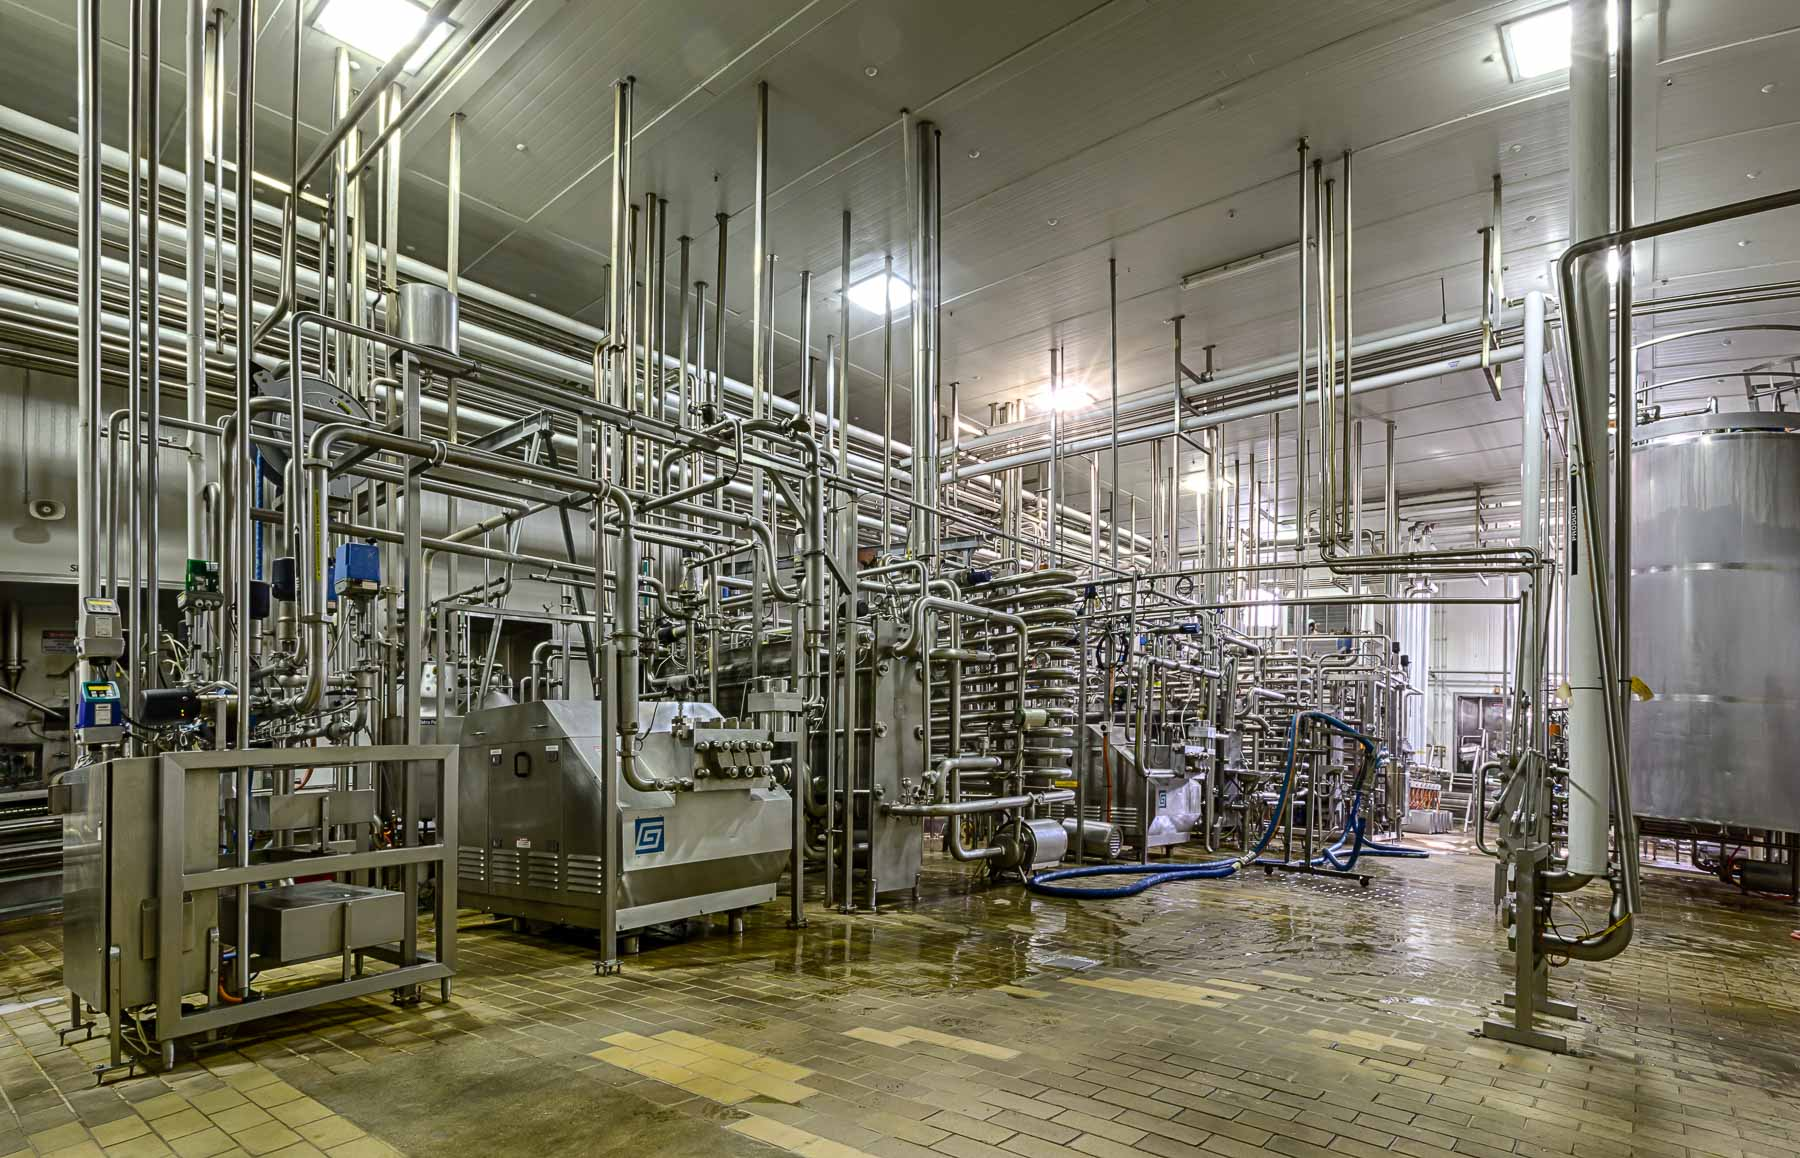 Commercial photography inside factory